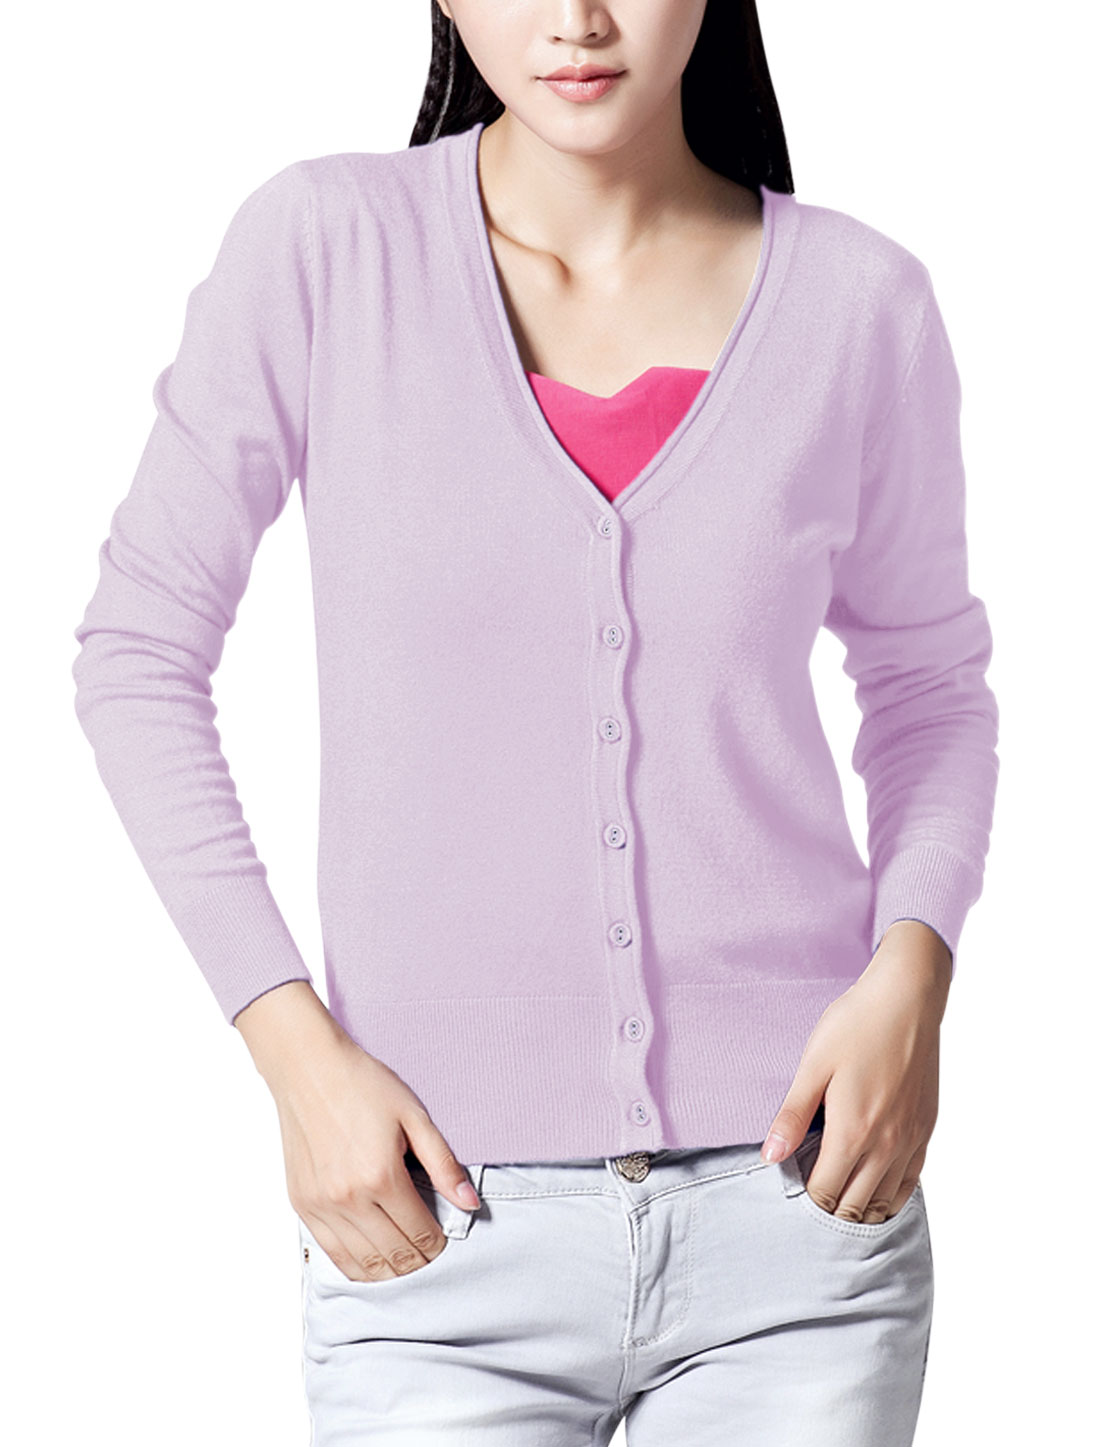 New Style V Neck Single Breasted Casual Knit Cardigan for Lady Lavender M